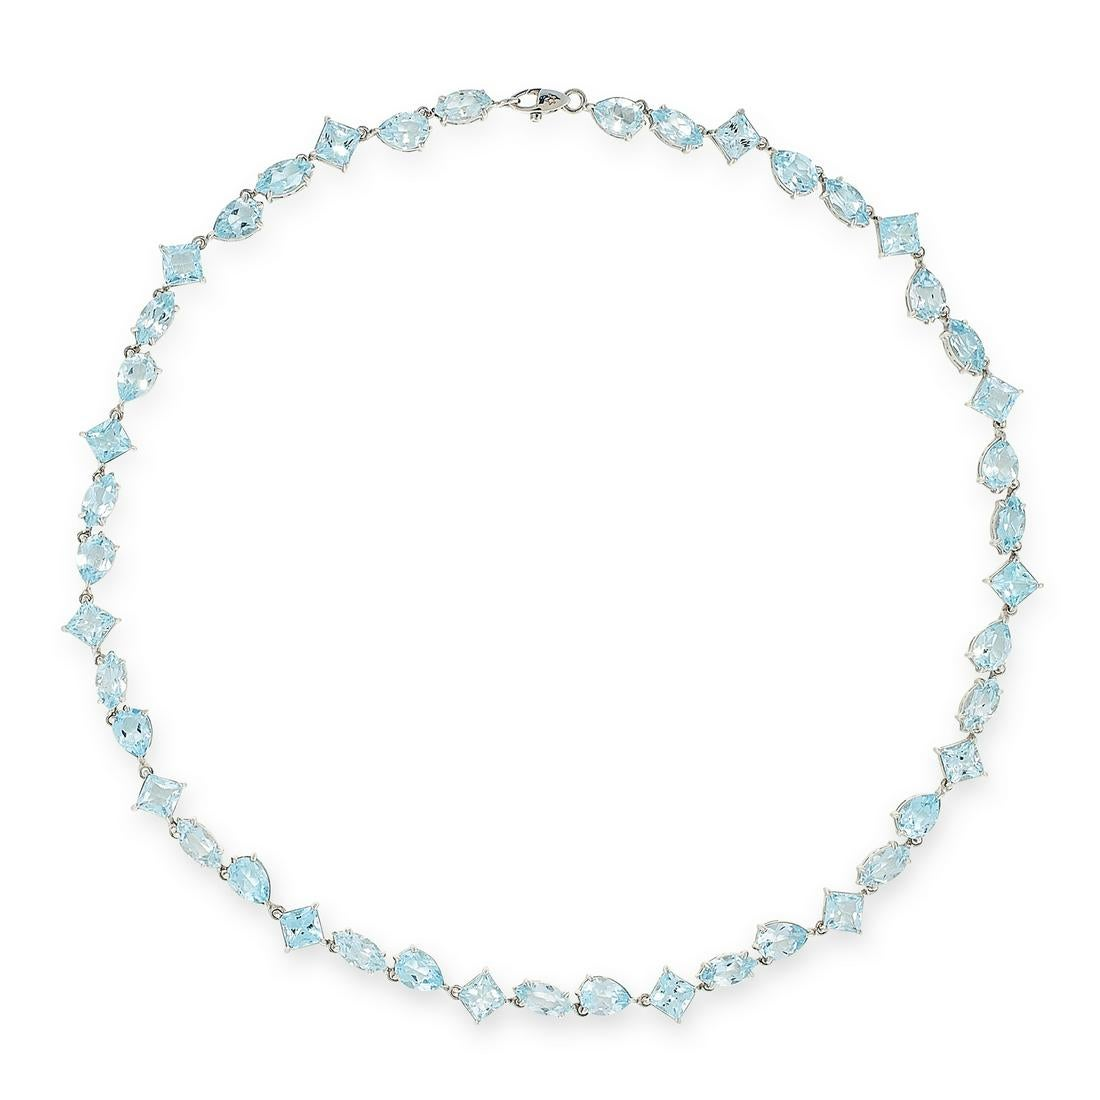 AN AQUAMARINE NECKLACE, H STERN in 18ct white gold, comprising a single row of forty-four